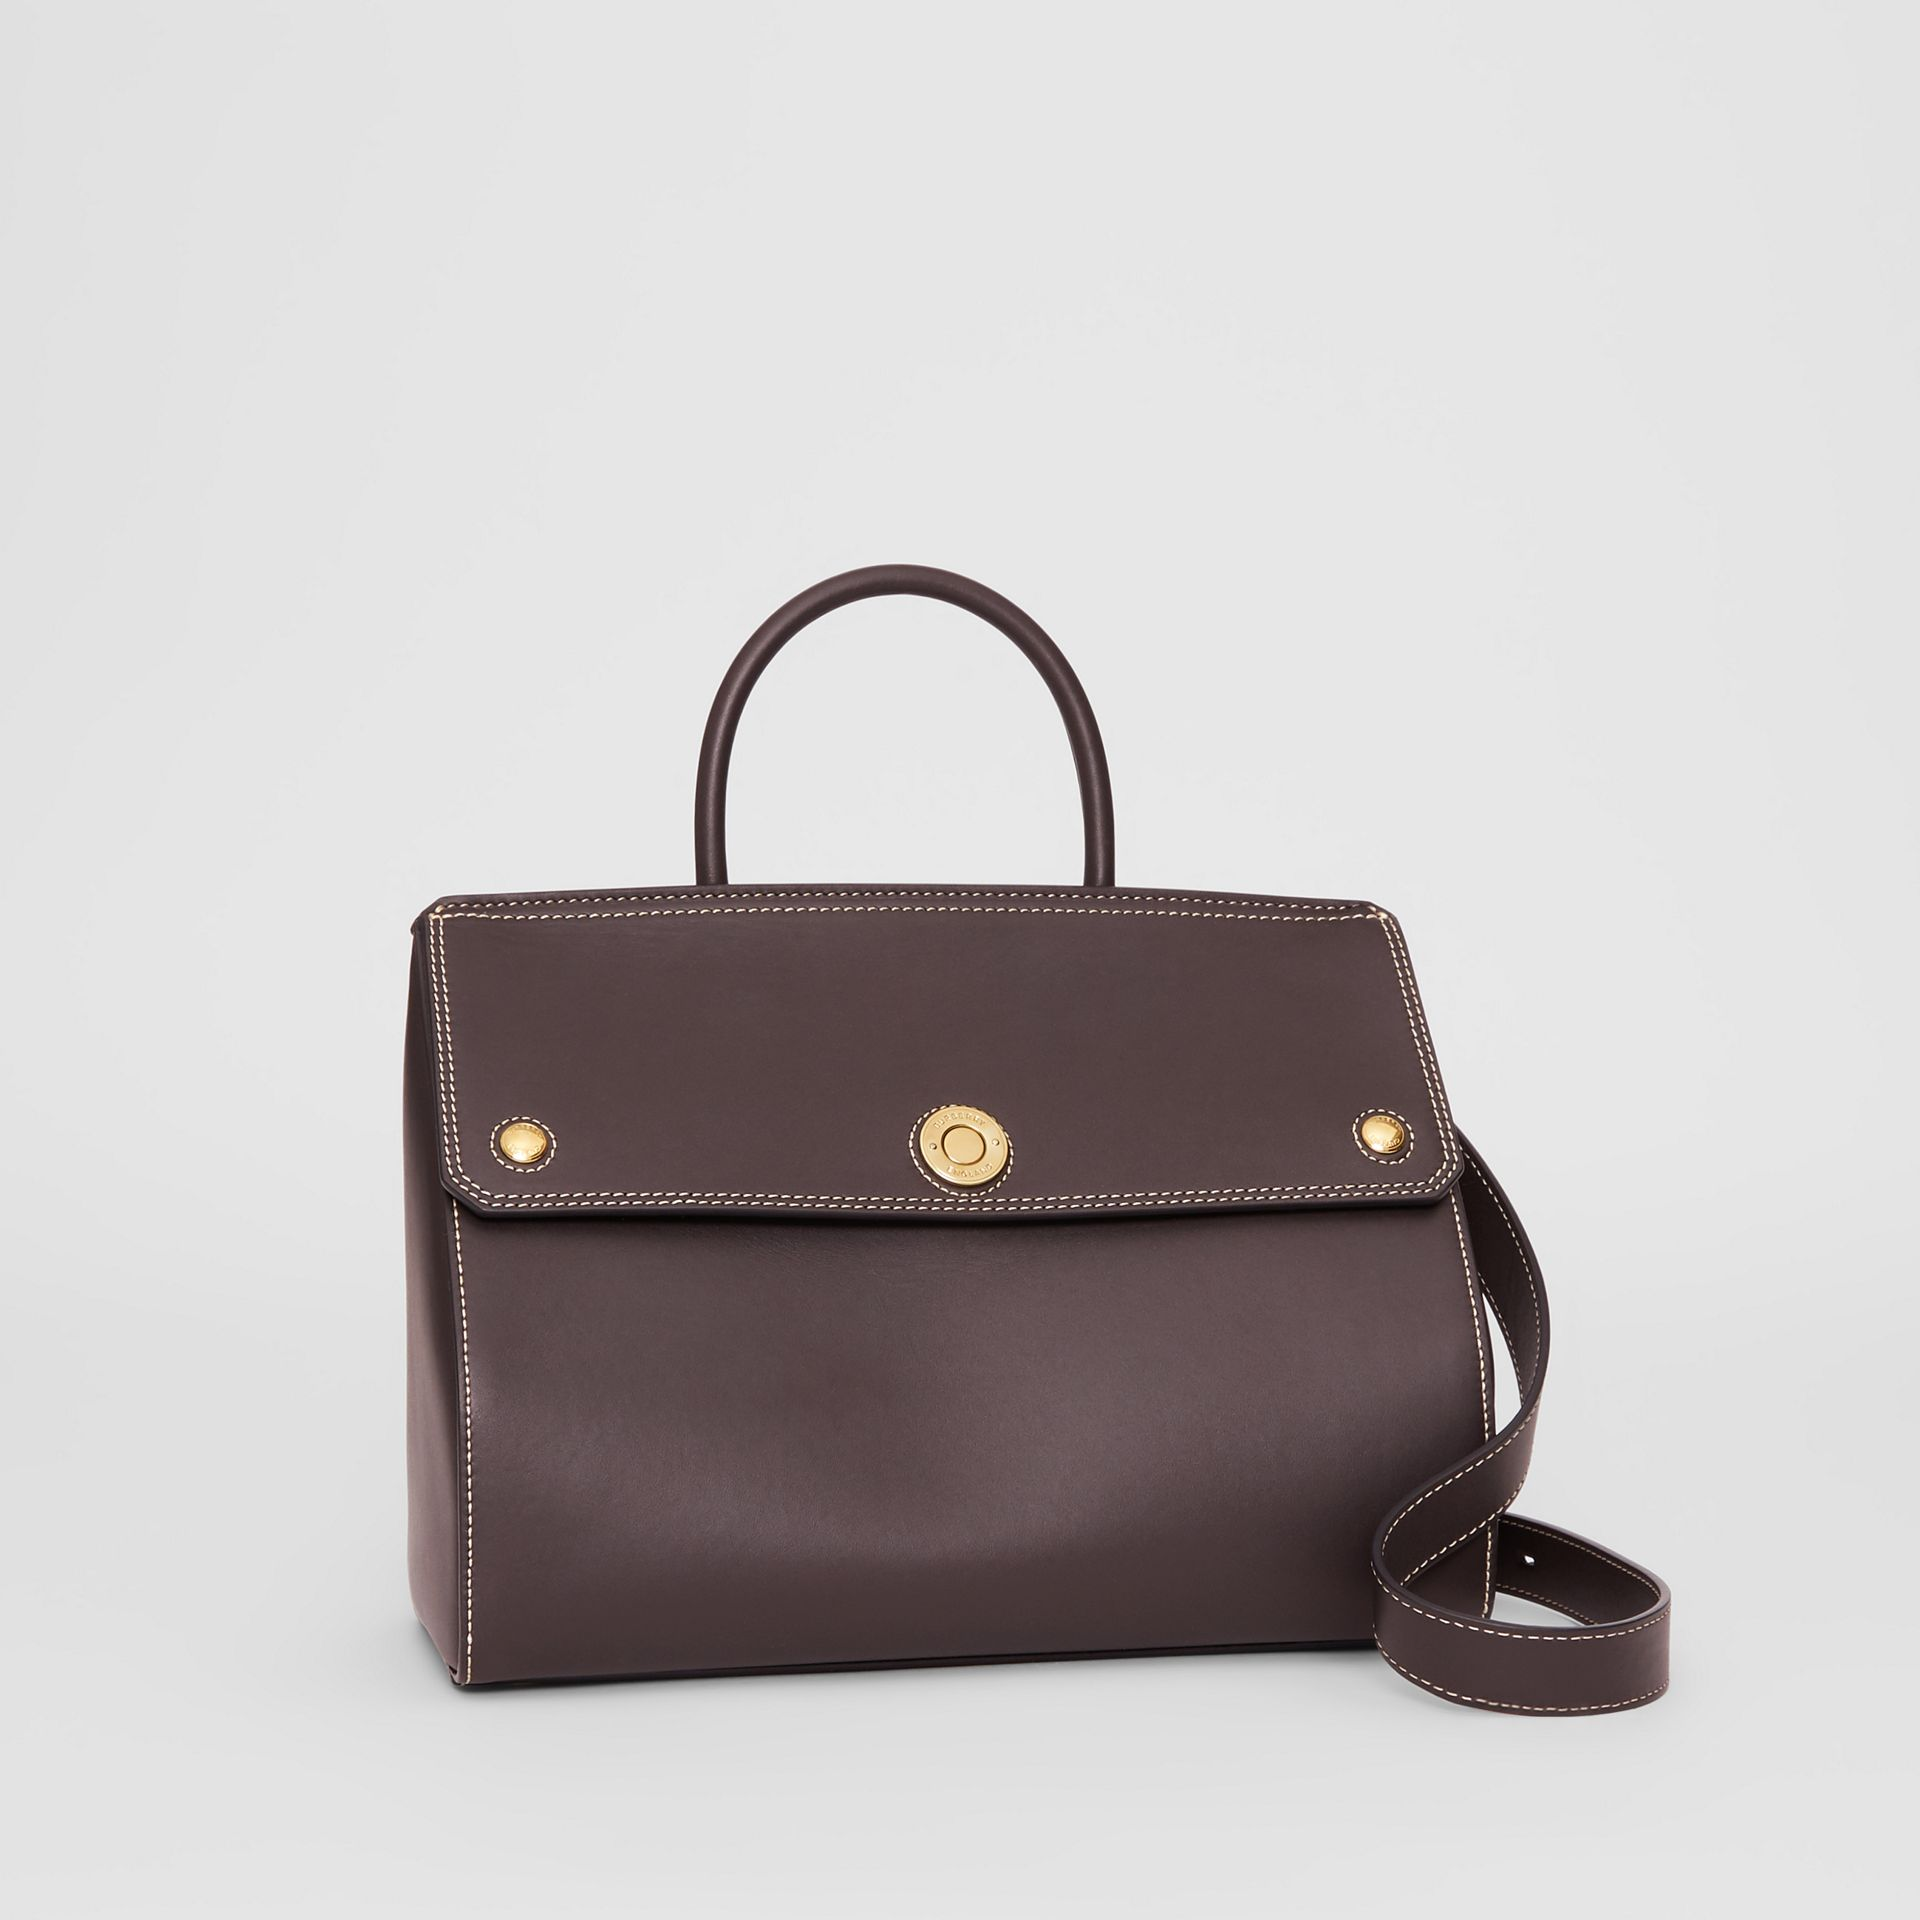 Small Leather Elizabeth Bag in Coffee - Women | Burberry Australia - gallery image 4